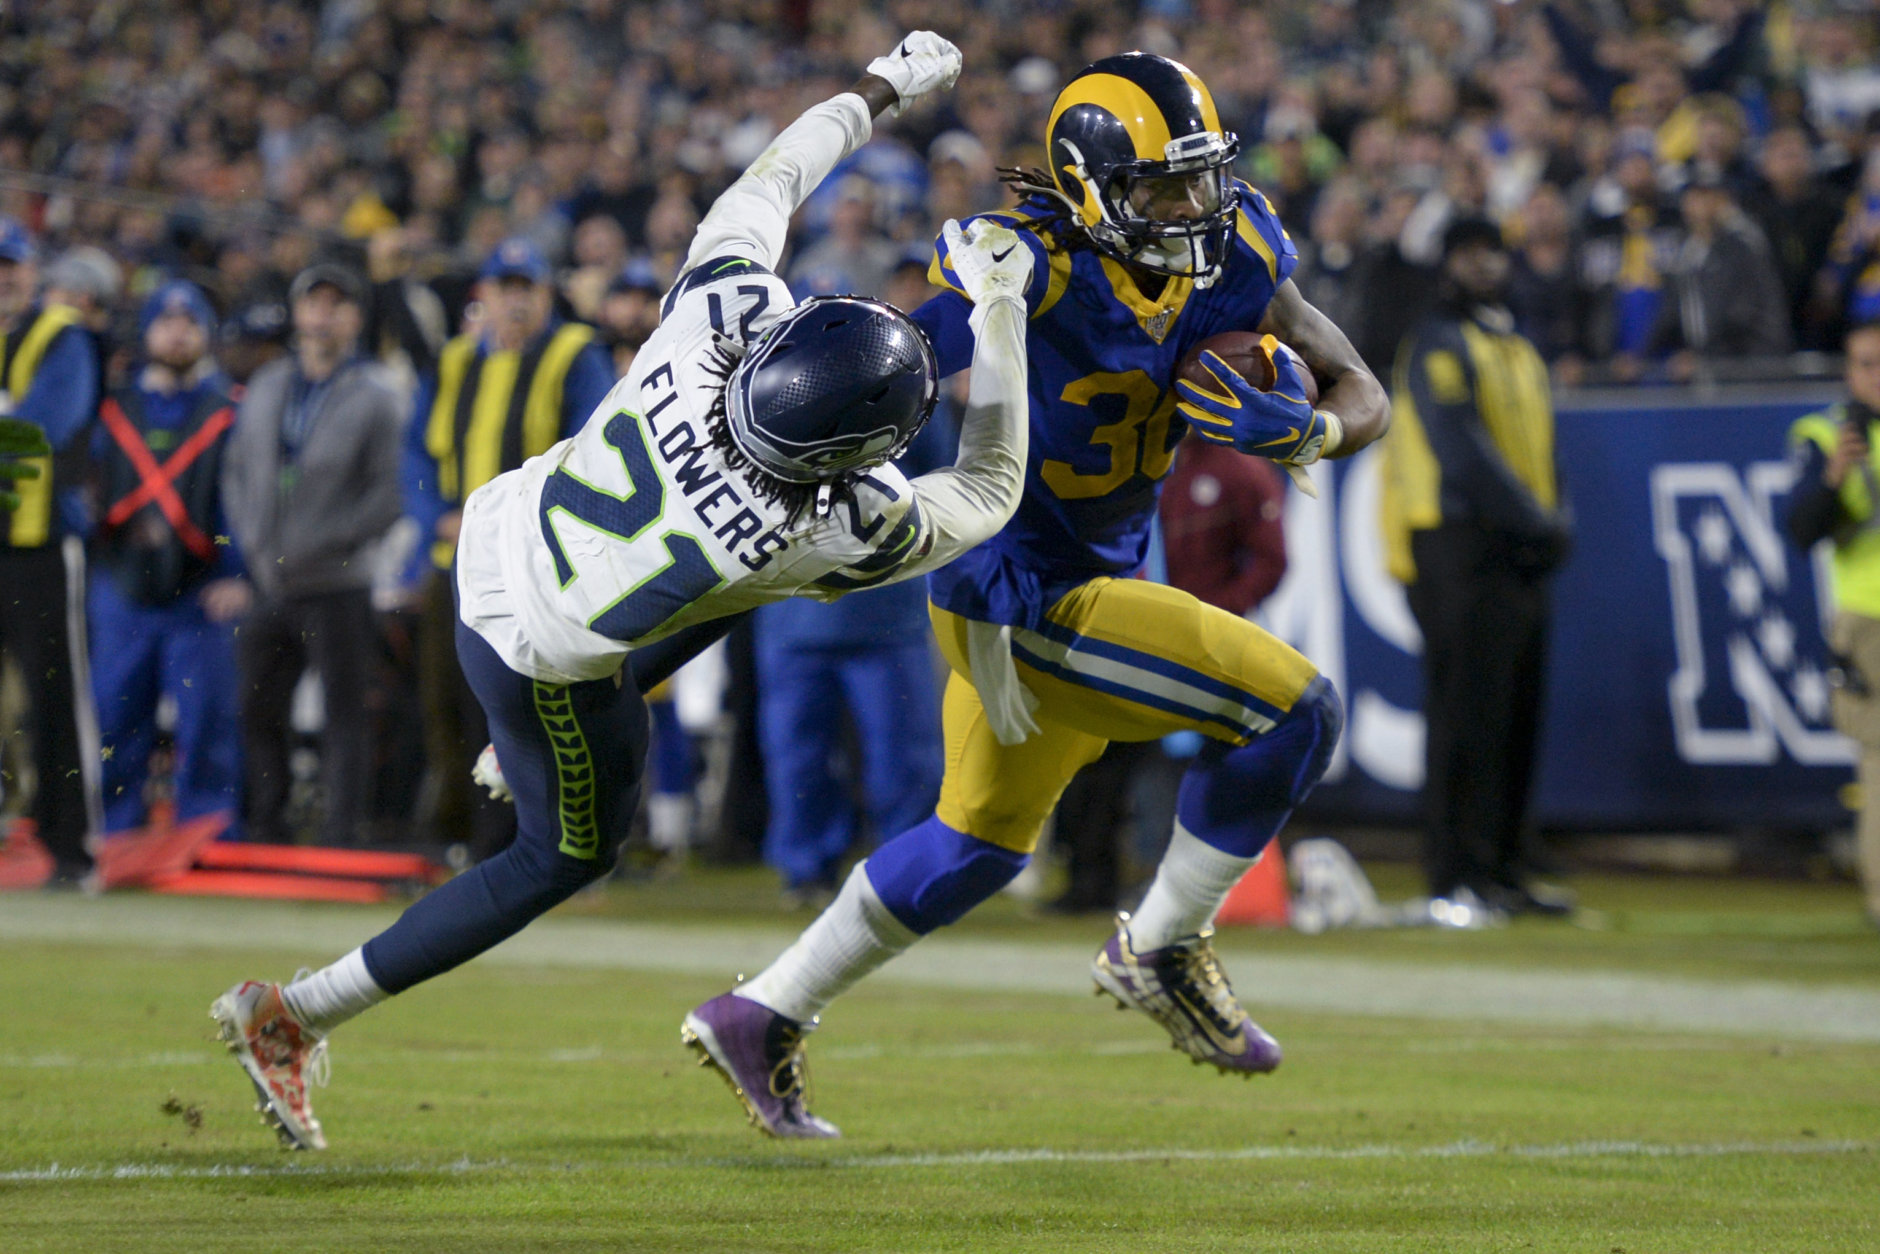 """<p><b><i>Seahawks 12</i></b><br /> <b><i>Rams 28</i></b></p> <p>Clearly, <a href=""""https://profootballtalk.nbcsports.com/2019/12/04/sean-mcvay-attributes-increased-todd-gurley-usage-to-me-not-being-an-idiot/"""">Sean McVay is not an idiot</a>. Todd Gurley again carried a full load and Jared Goff again had a good night for a Rams offense looking more like the team that represented the NFC in last season&#8217;s Super Bowl. L.A. is back to being must-see TV.</p>"""